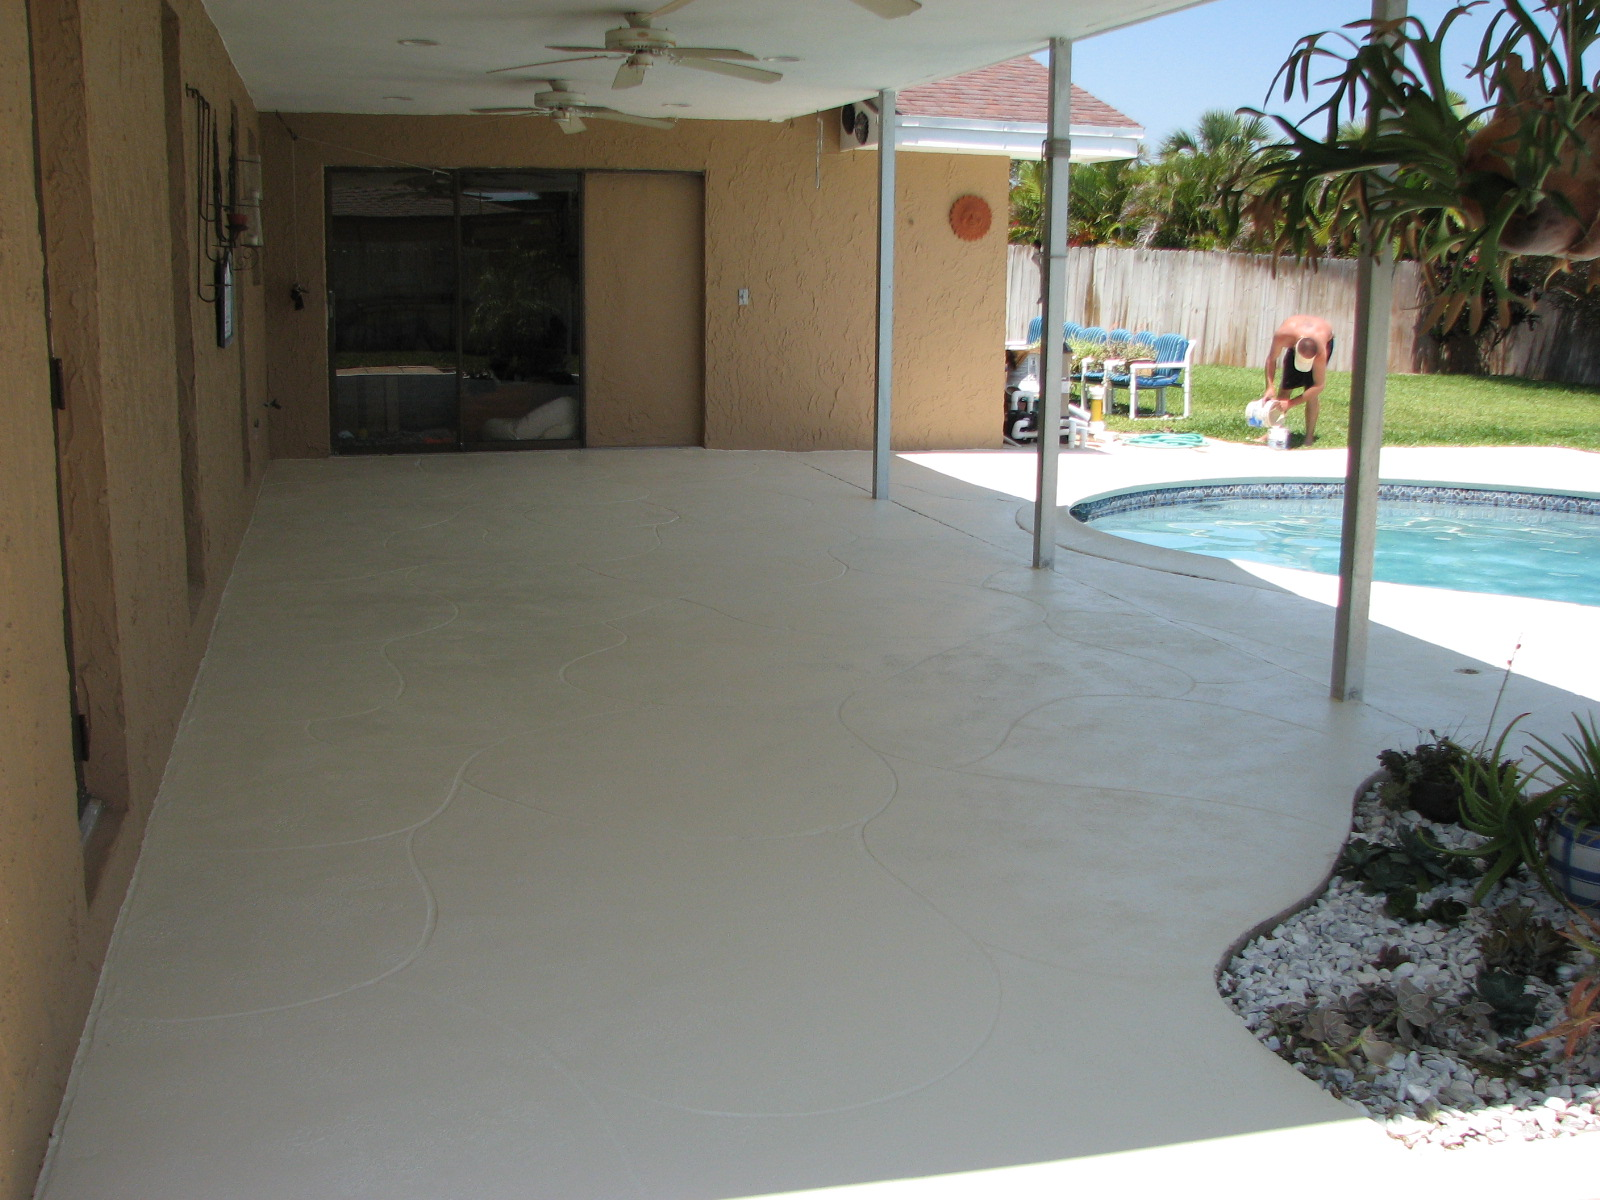 Indialantic Pool Lanai Repair And Painting- After Photo: